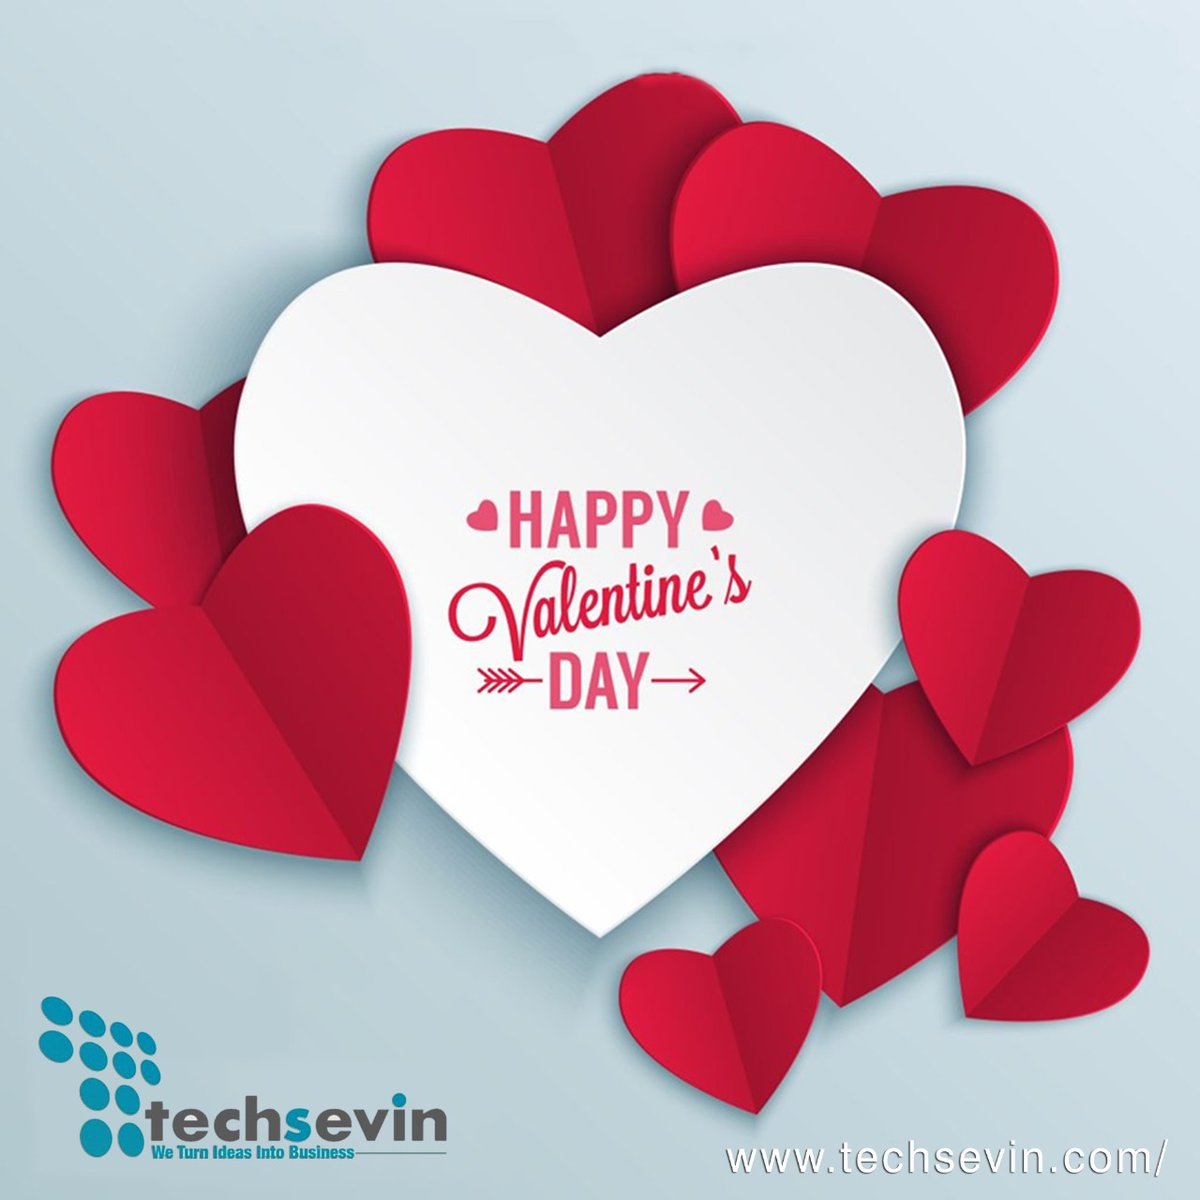 Wishing you all HAPPY VALENTINE'S DAY from team TECHSEVIN  #teamtechsevin #Valentine2020 #14februray #valentinesday #valentineweek #monthoflove #vday #corporatevalentine #corporatehumor #ceolife #softwaredeveloper #softwaretesting #software #technology #technologyrocks pic.twitter.com/uFwHmyXU8n